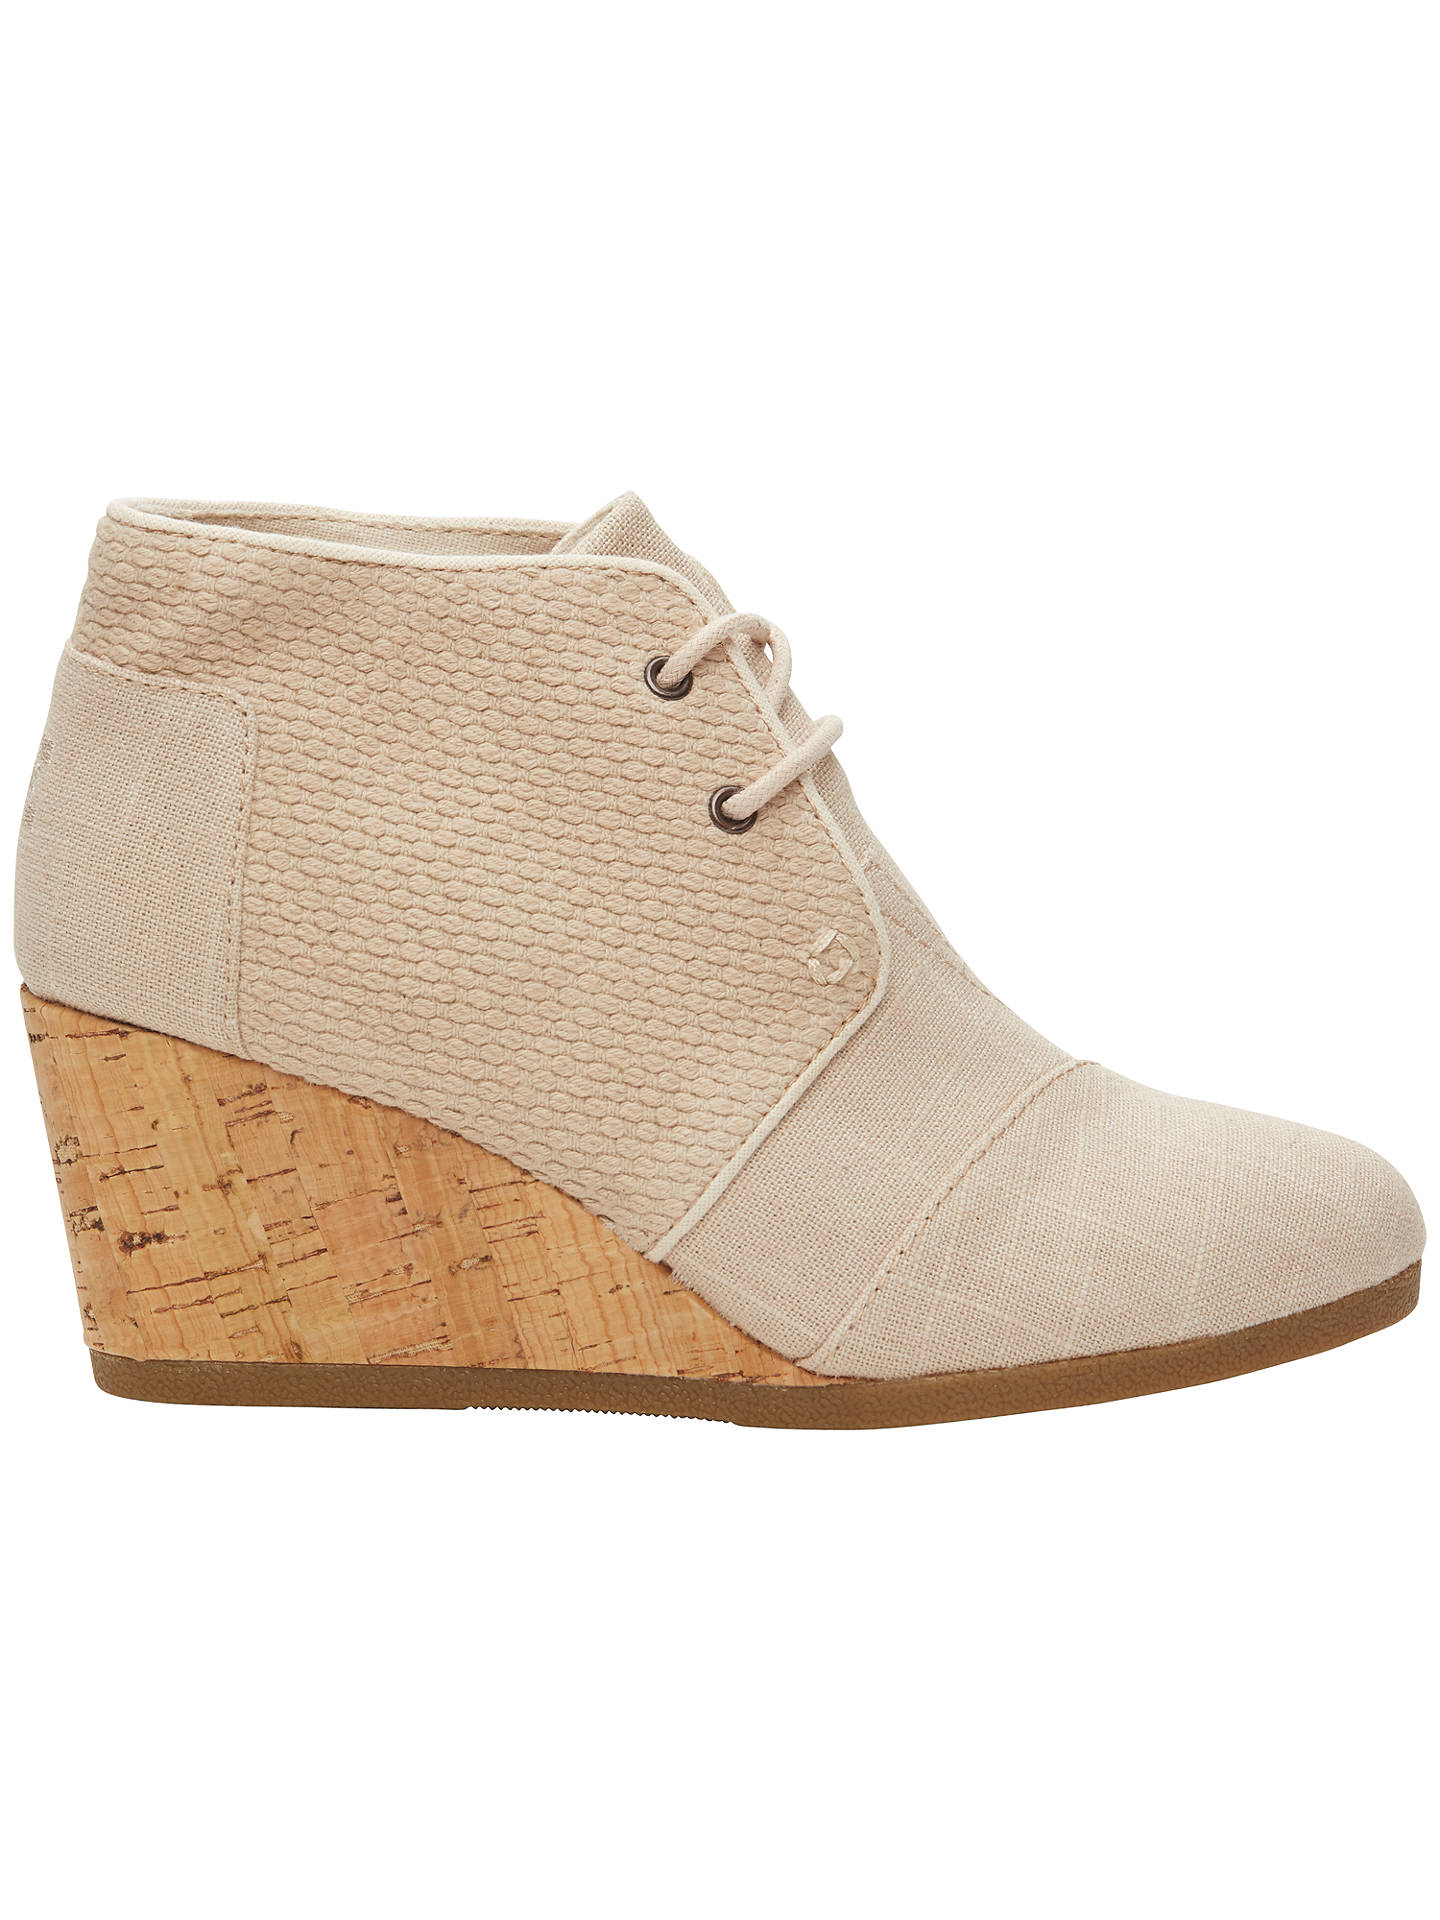 67c2005a9ee Buy TOMS Desert Canvas Wedge Heeled Ankle Boot